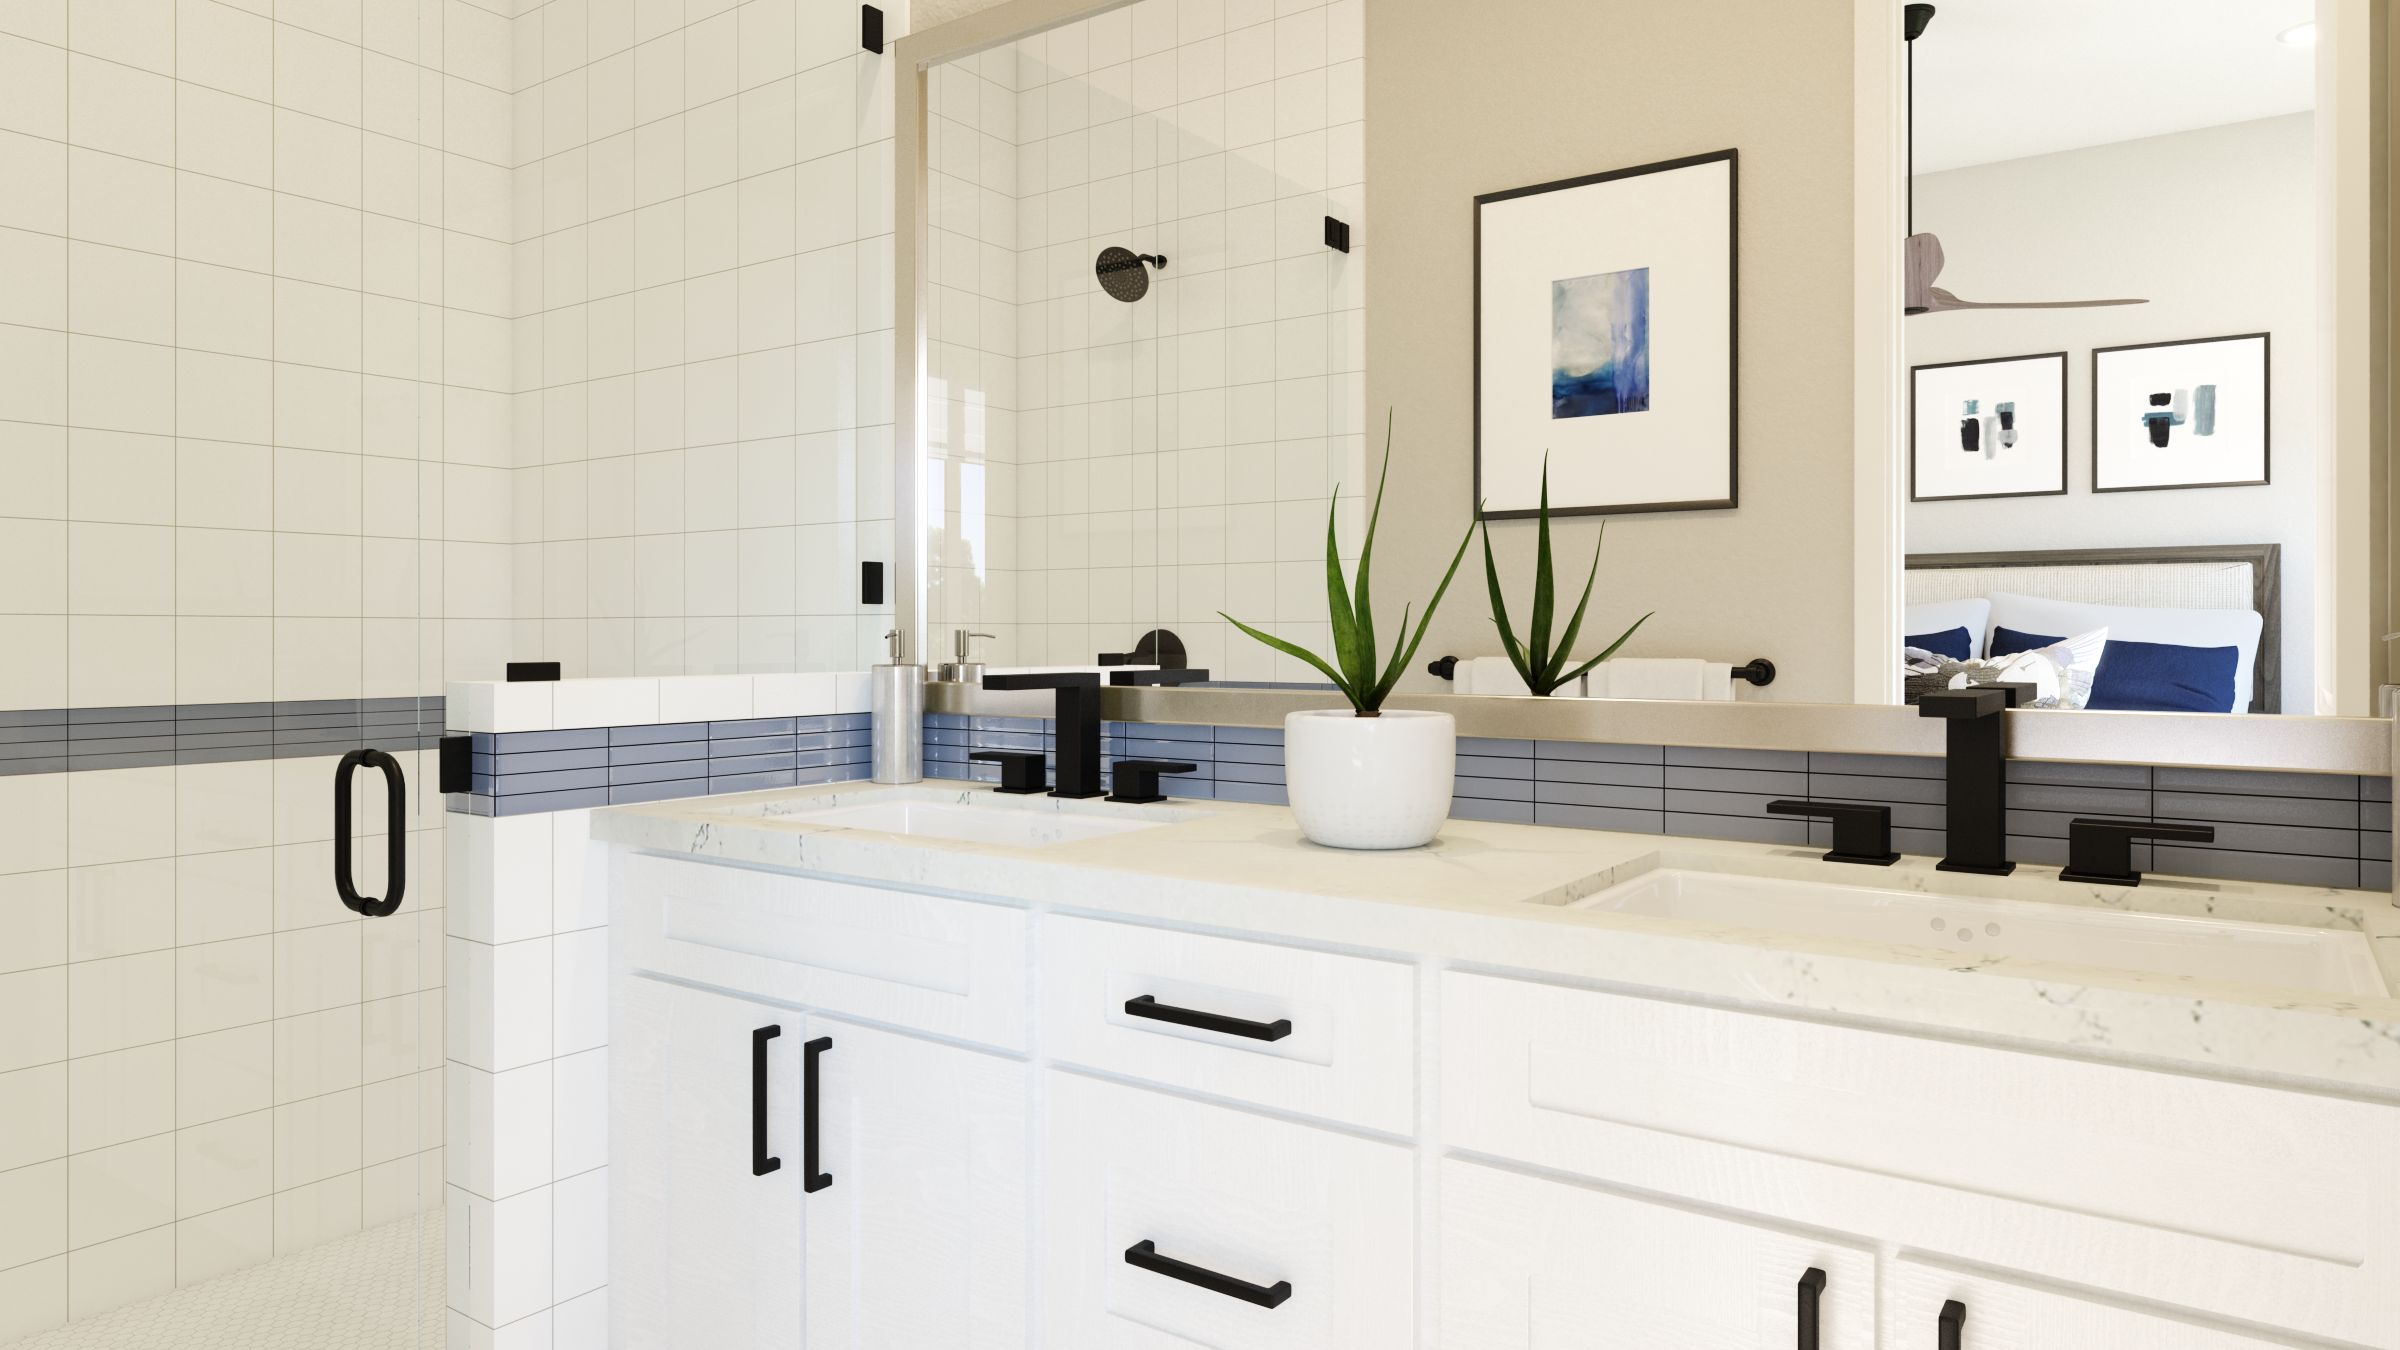 Bathroom featured in the Residence 3 By G3 Urban in Los Angeles, CA